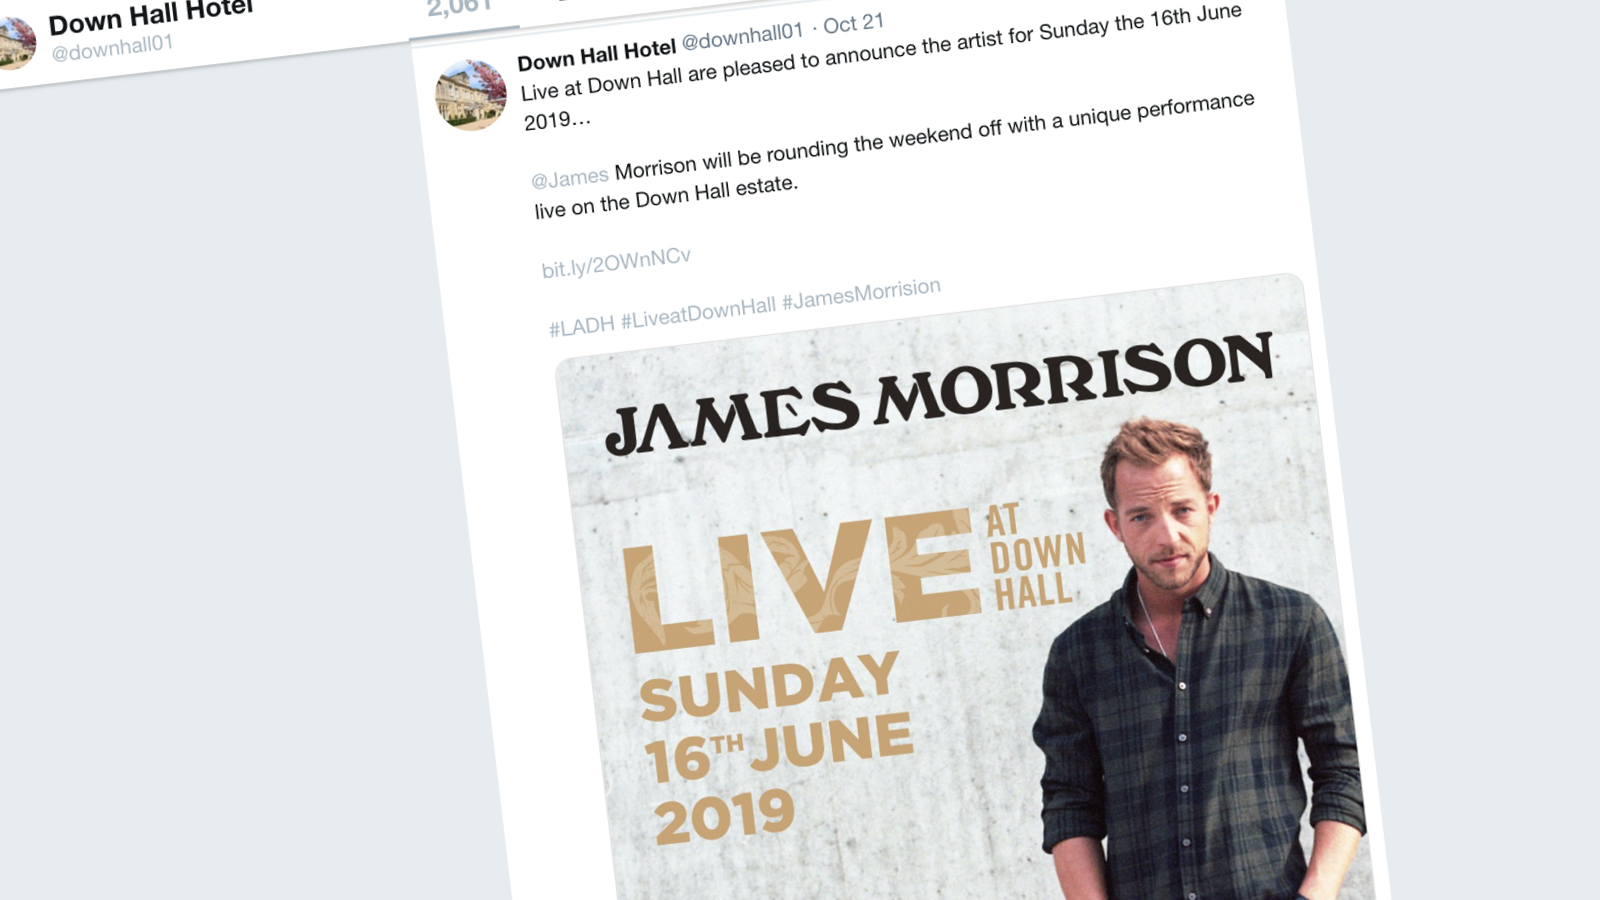 Live at Down Hall - James Morrison (Twitter)